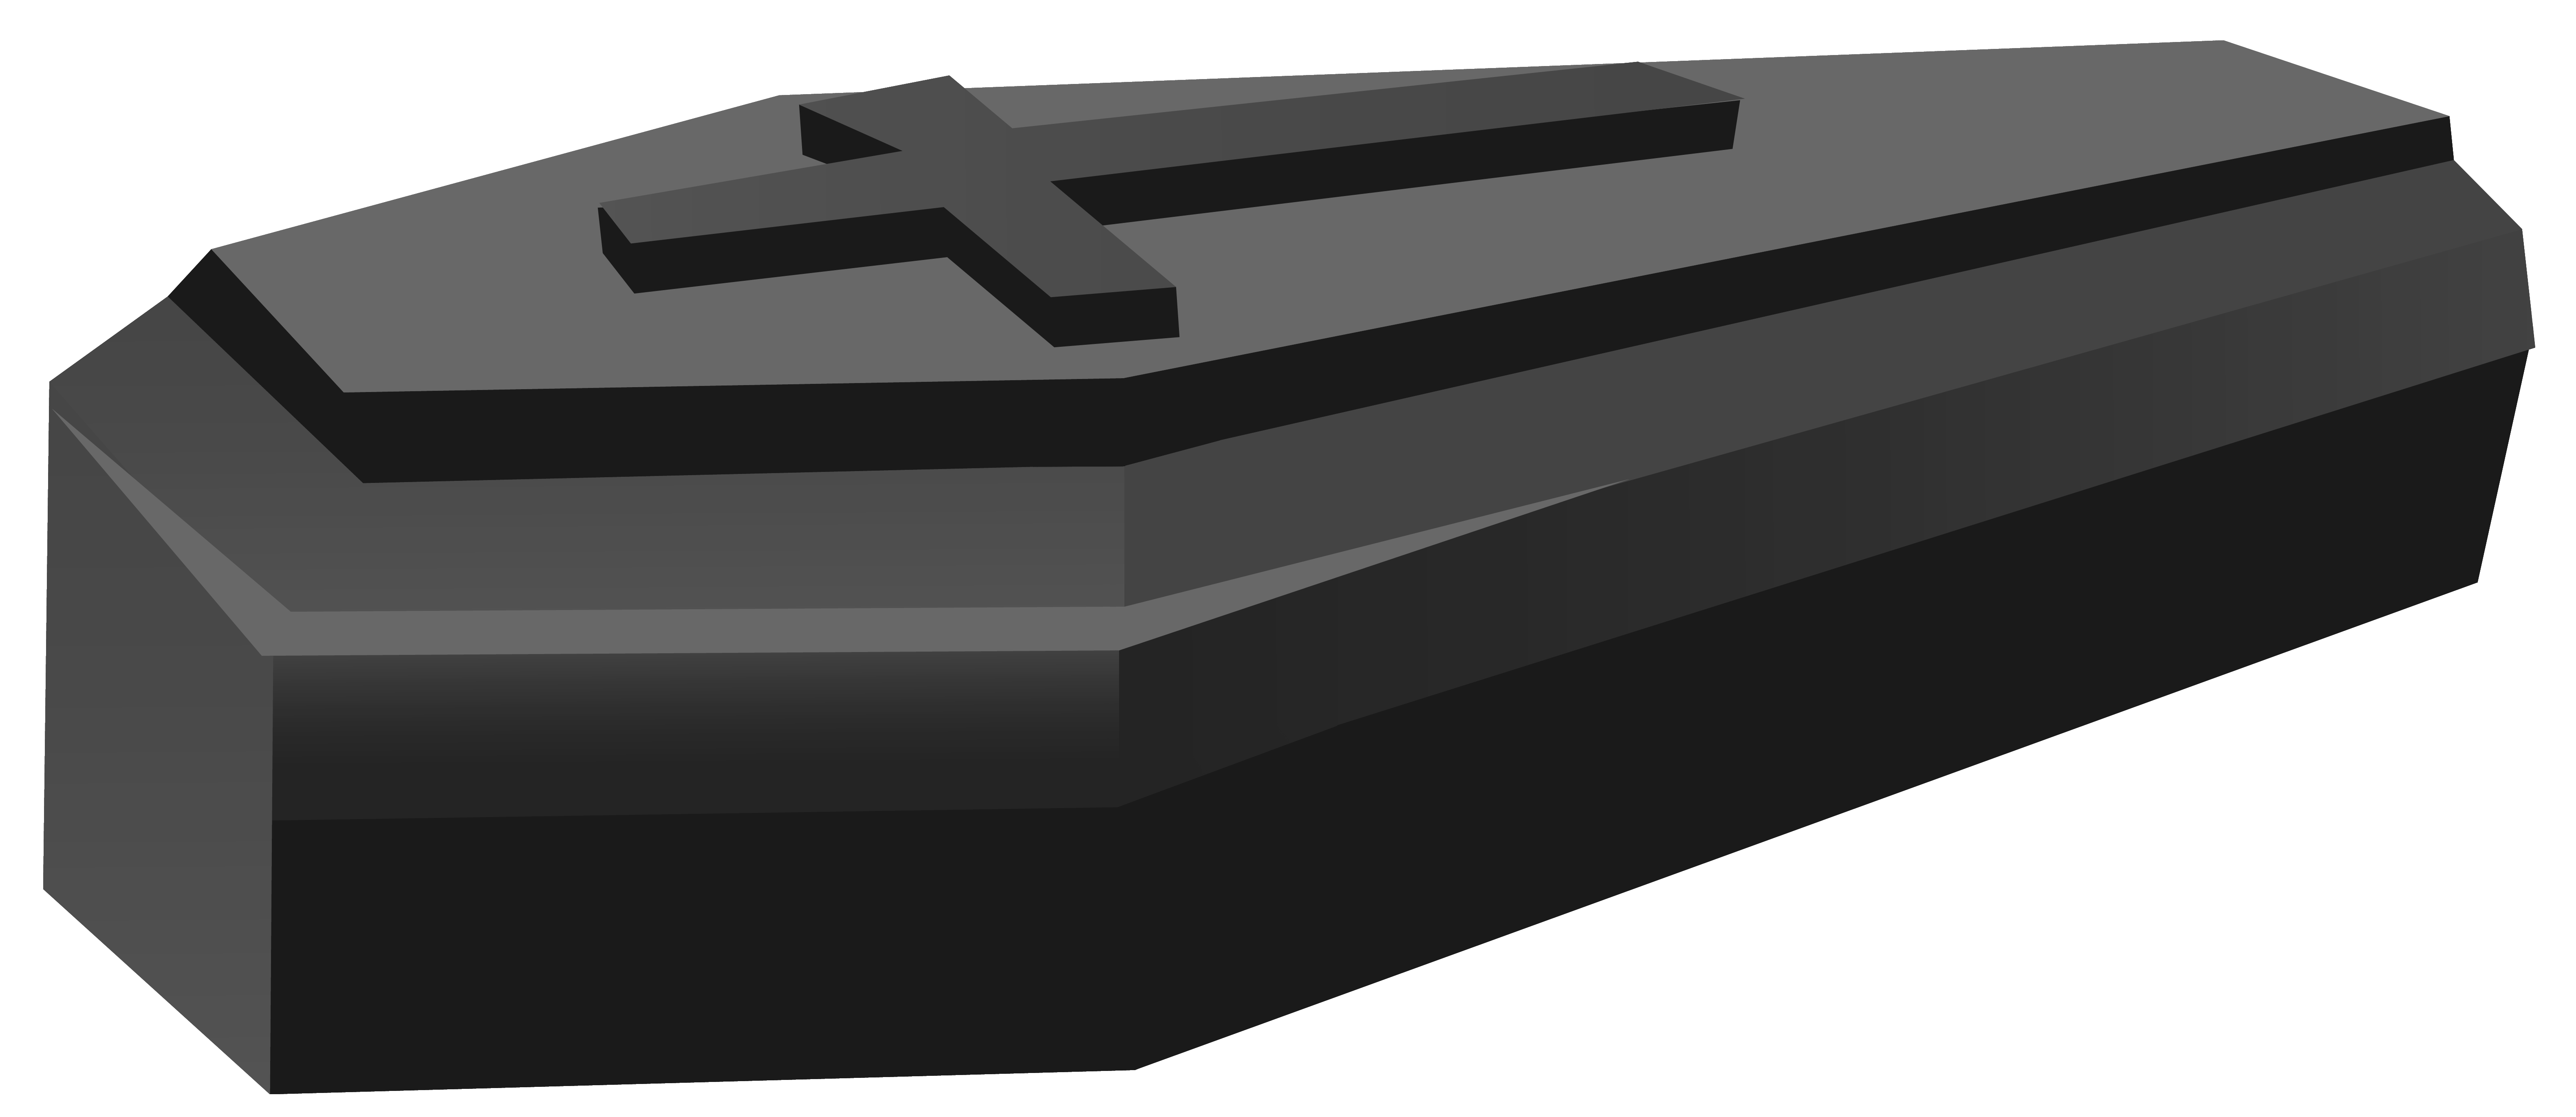 3d coffin clipart png freeuse stock Free Coffin Cliparts, Download Free Clip Art, Free Clip Art on ... png freeuse stock